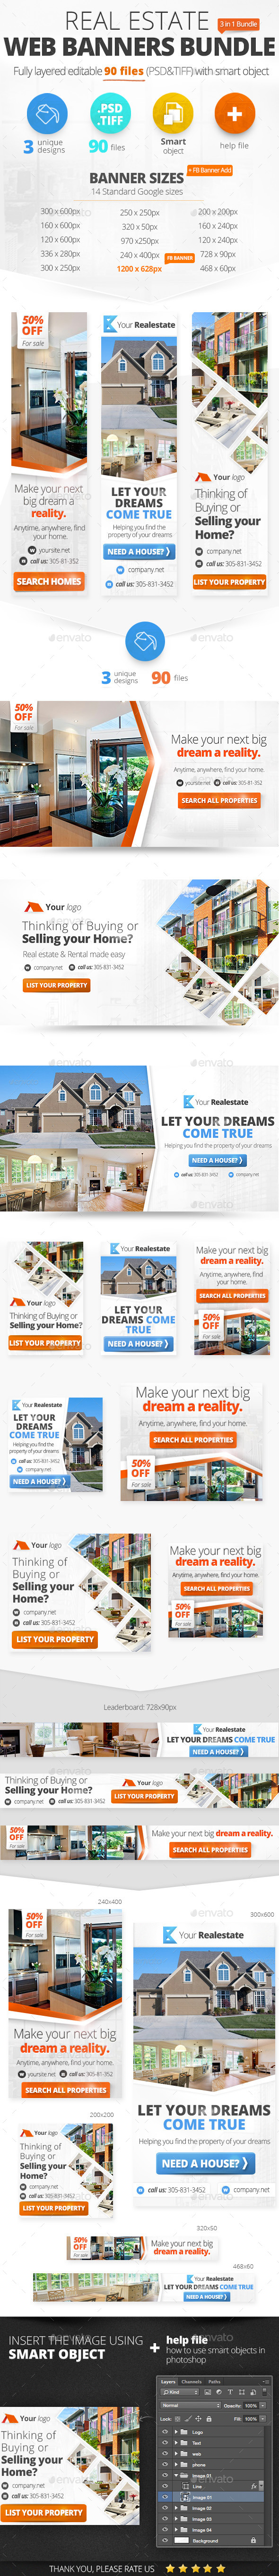 Real Estate Web Banners Bundle